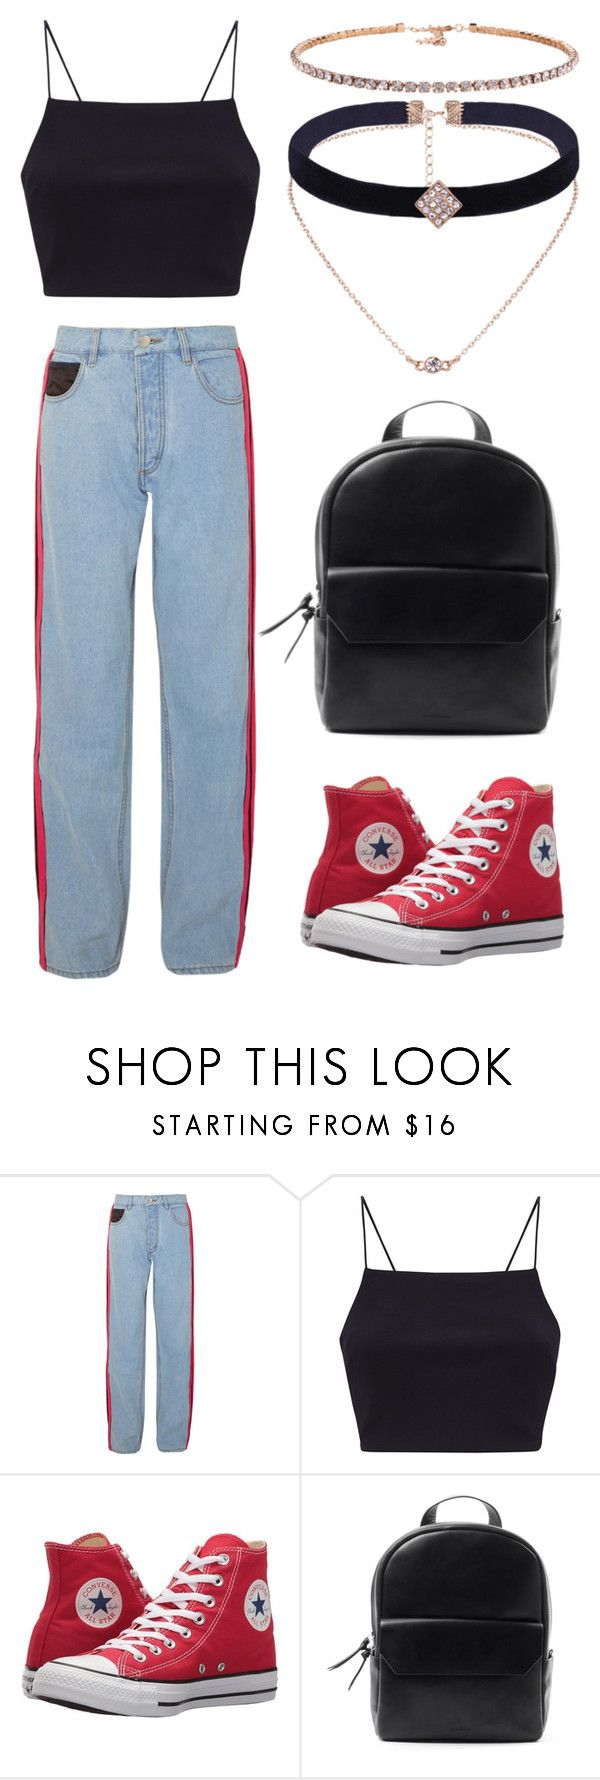 """""""~When Your Bored In Fashion Class~"""" by creativegurlsrbaexoxo ❤ liked on Polyvore featuring Koché and Converse"""